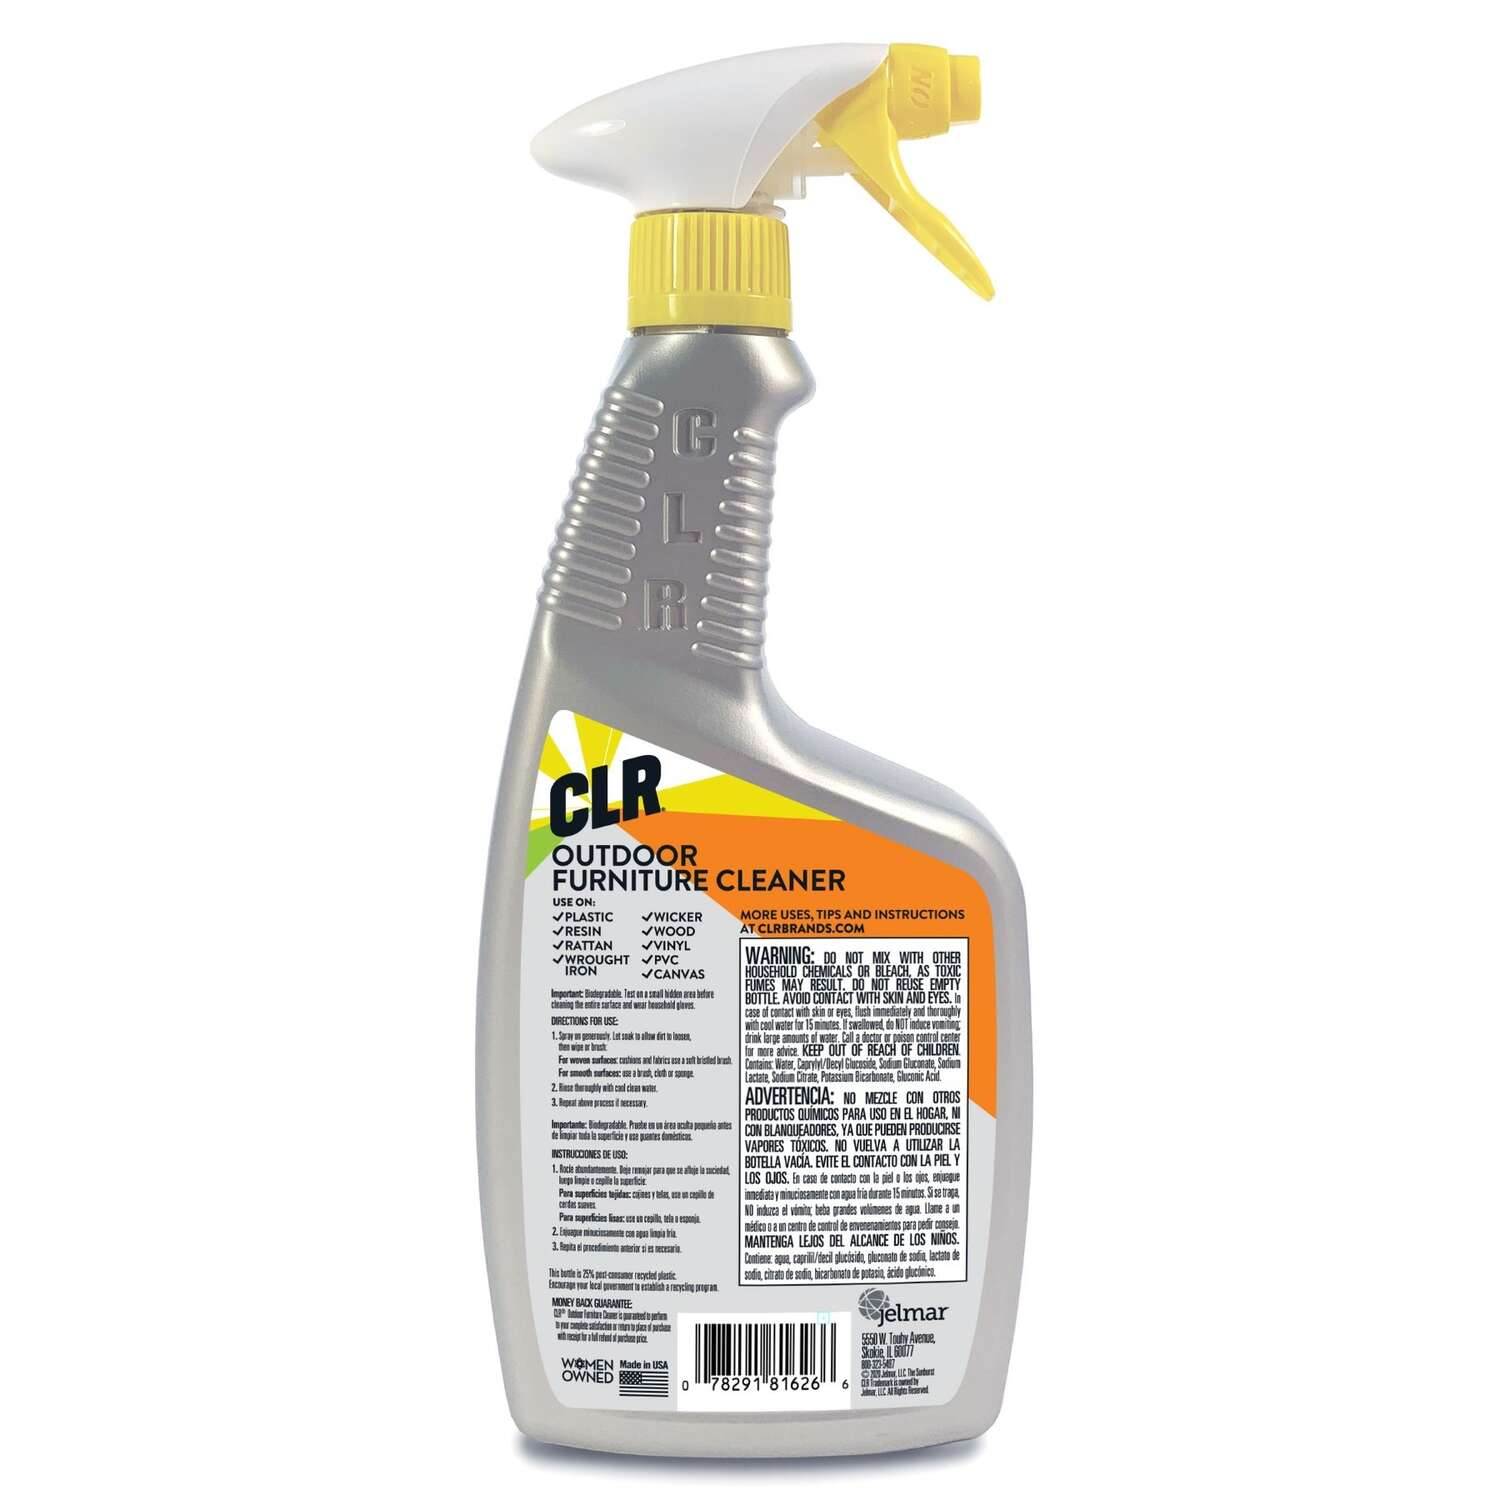 CLR  No Scent Outdoor Furniture Cleaner  26 ounce  Spray